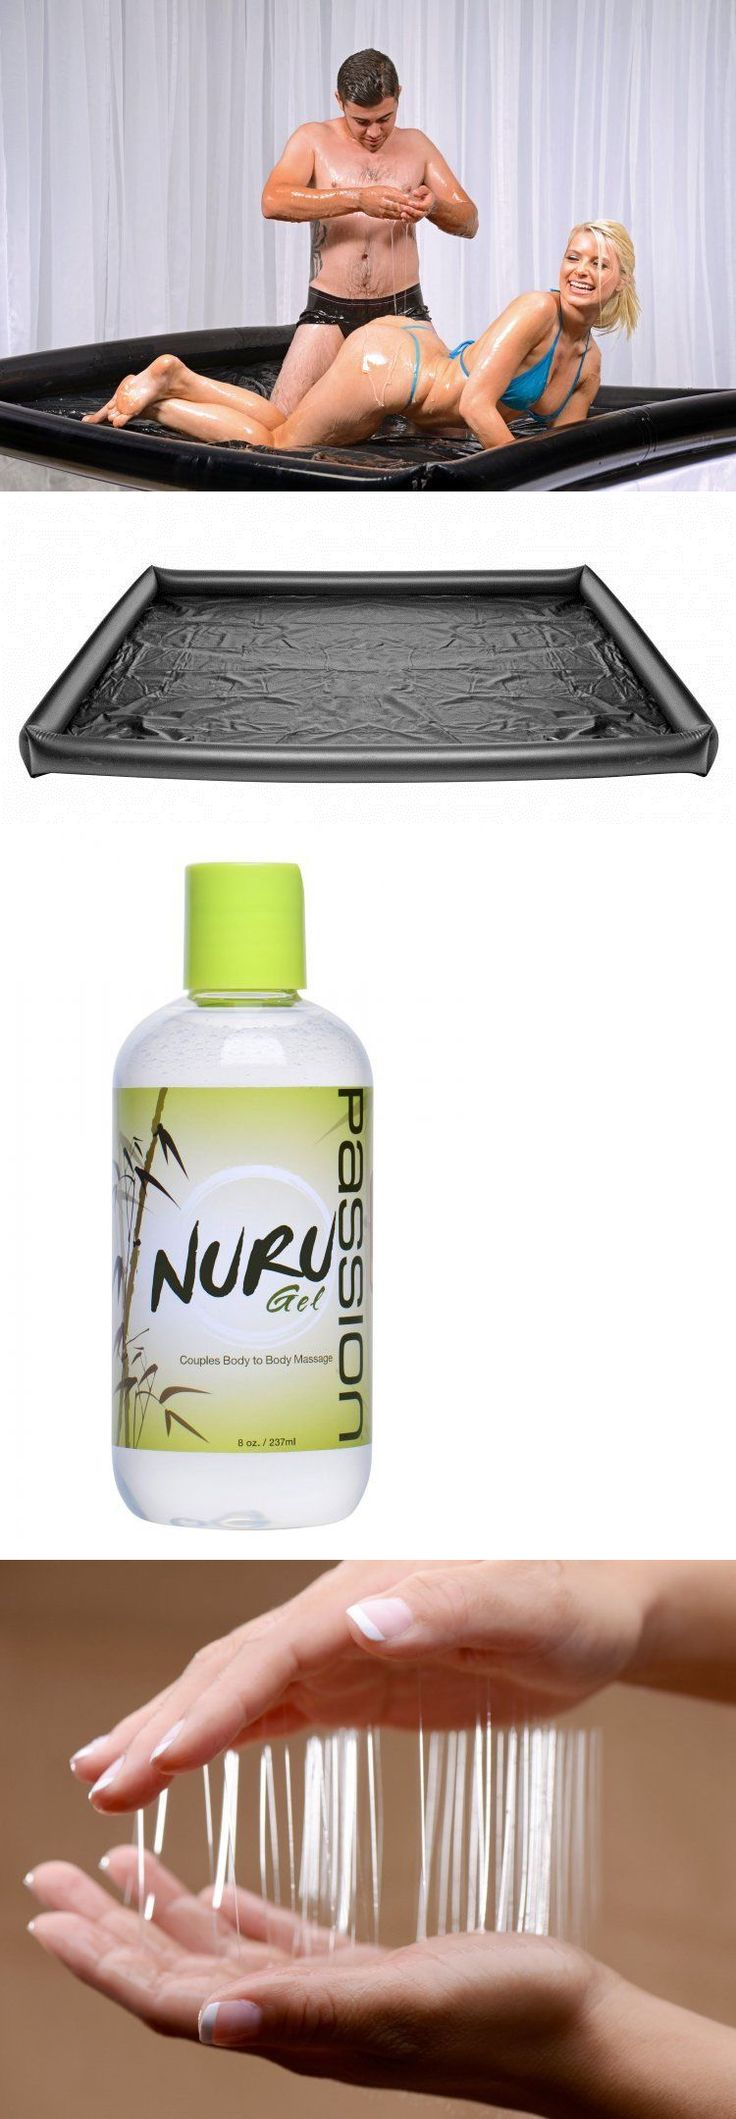 Lubricants and Lotions: Nuru Couples Body To Body Massage Gel With Vinyl Massage Sheet -> BUY IT NOW ONLY: $59.64 on eBay!